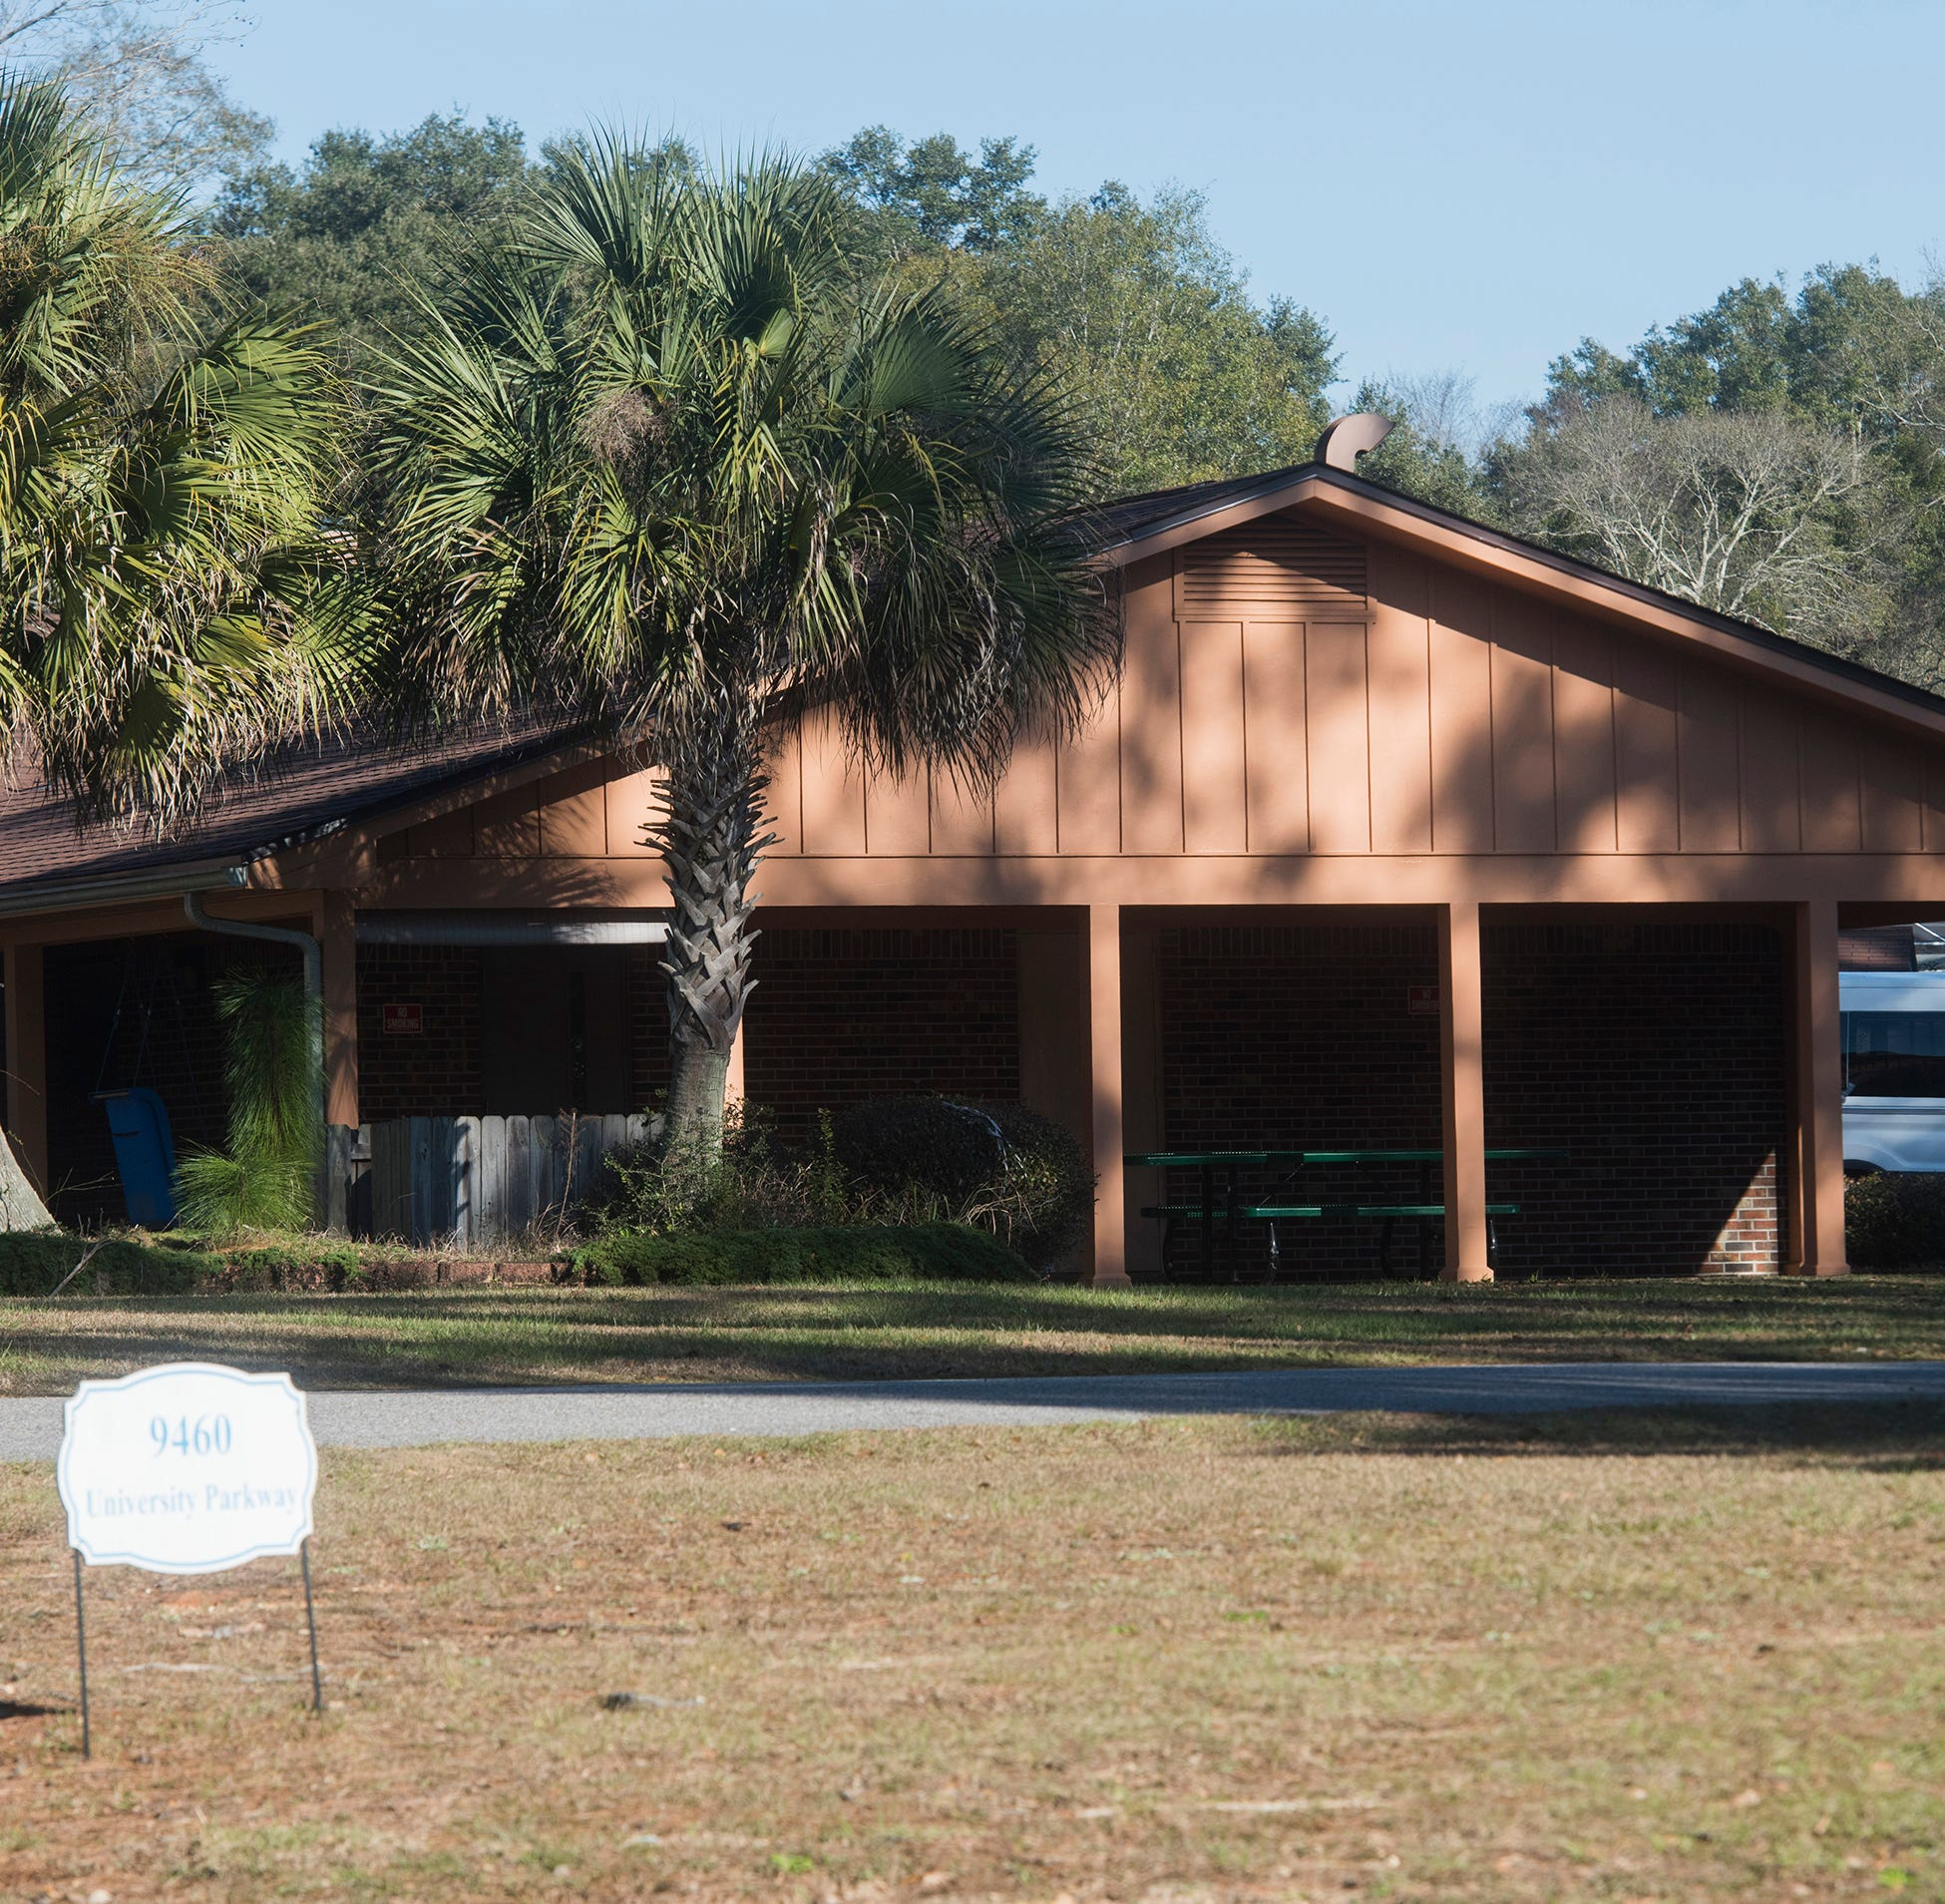 Lawsuit claims disabled woman was raped, impregnated at Pensacola adult care facility